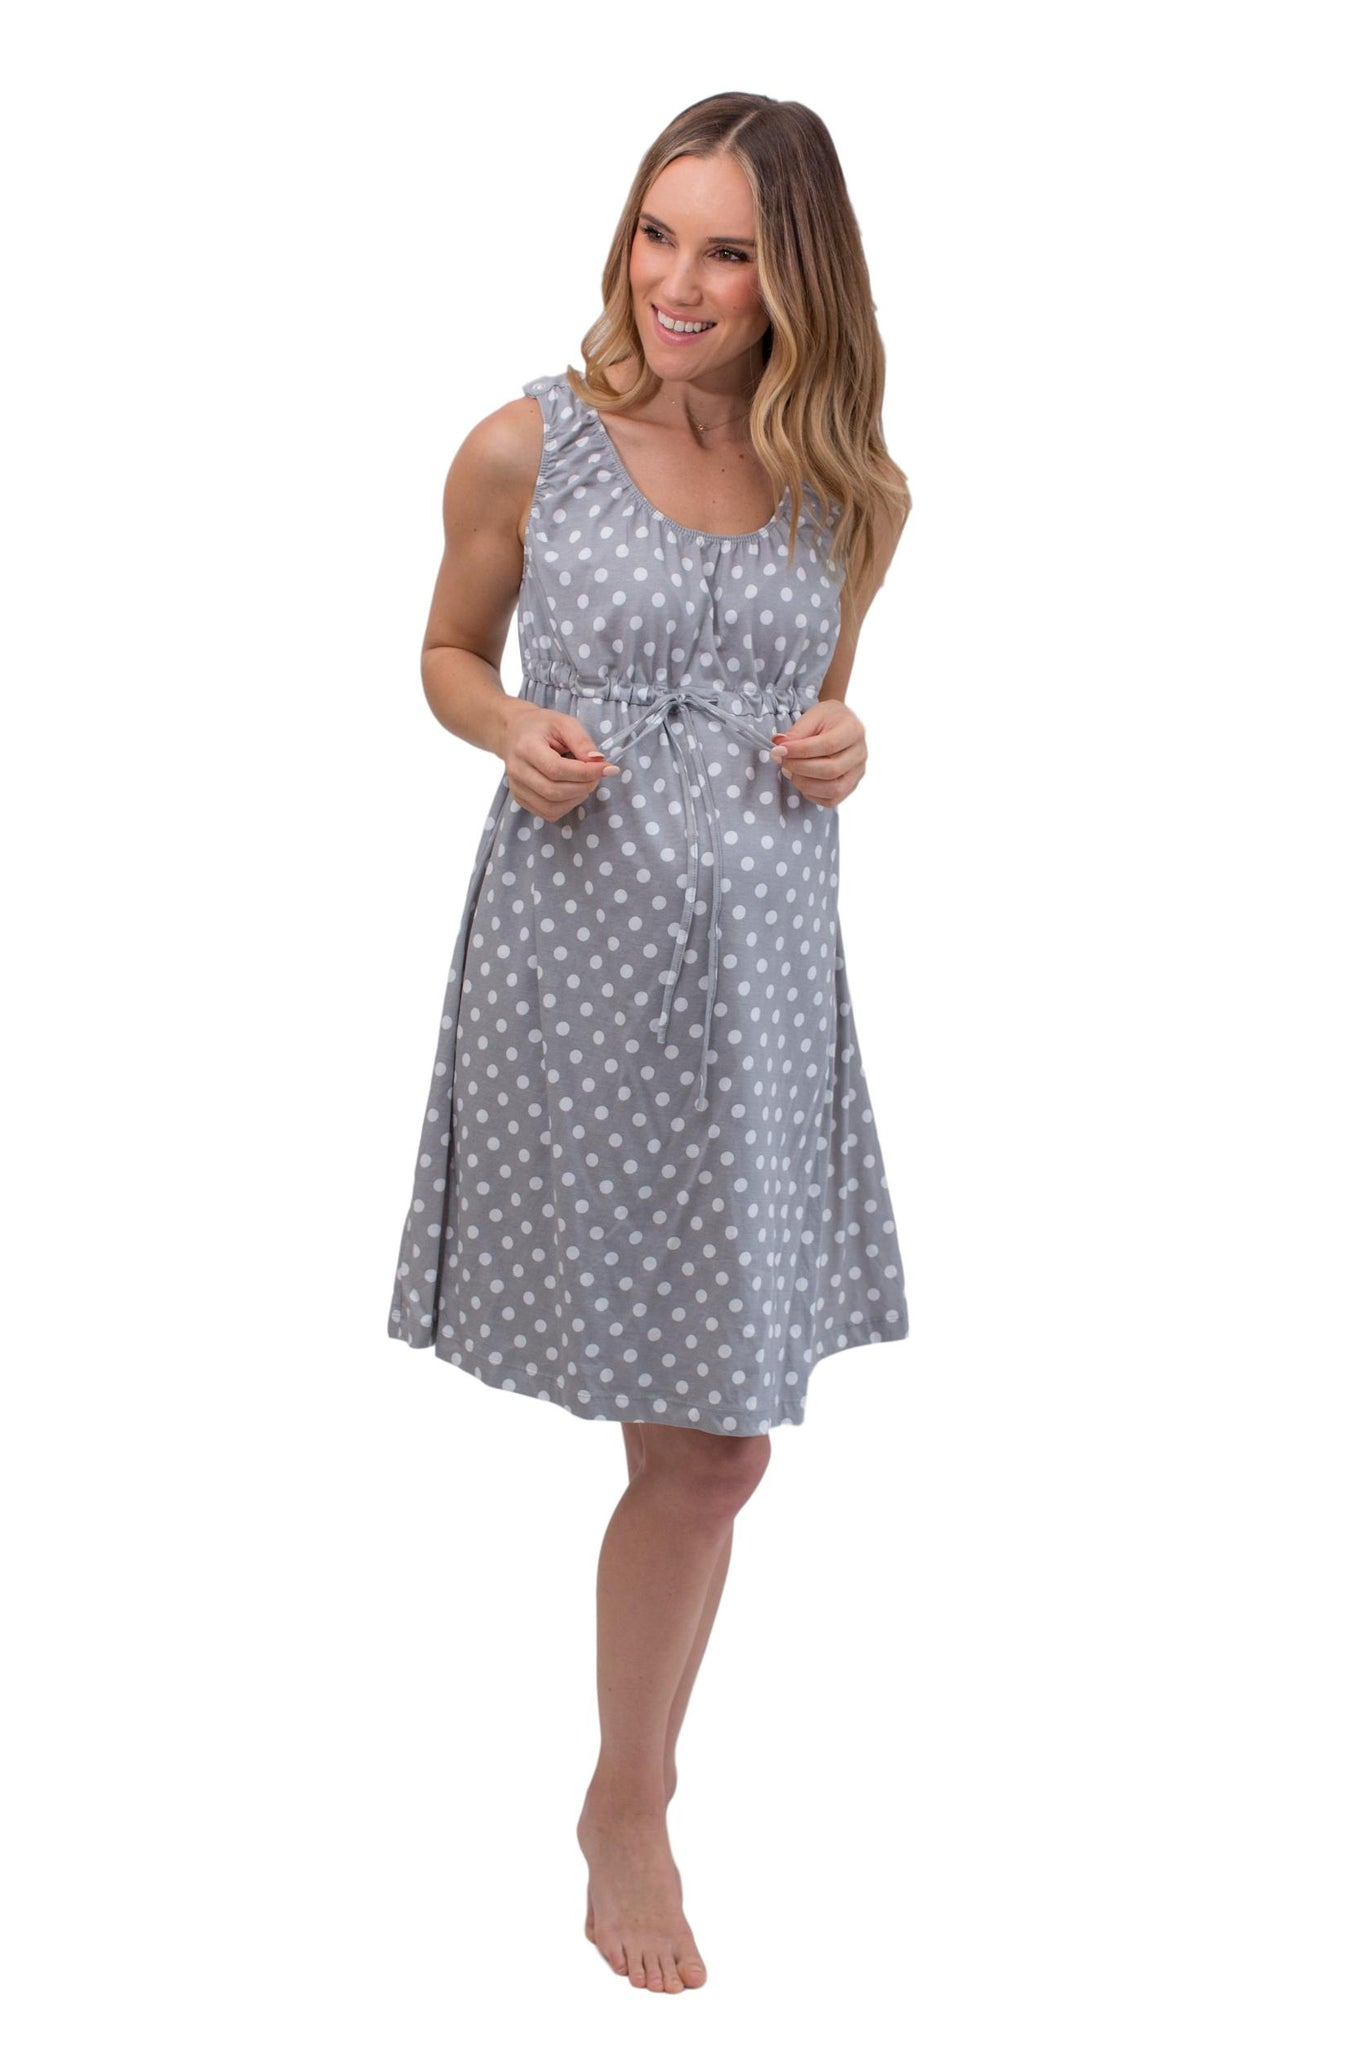 Lisa 3 in 1 Labor / Delivery / Nursing Birthing Hospital Gown Grey Dotted